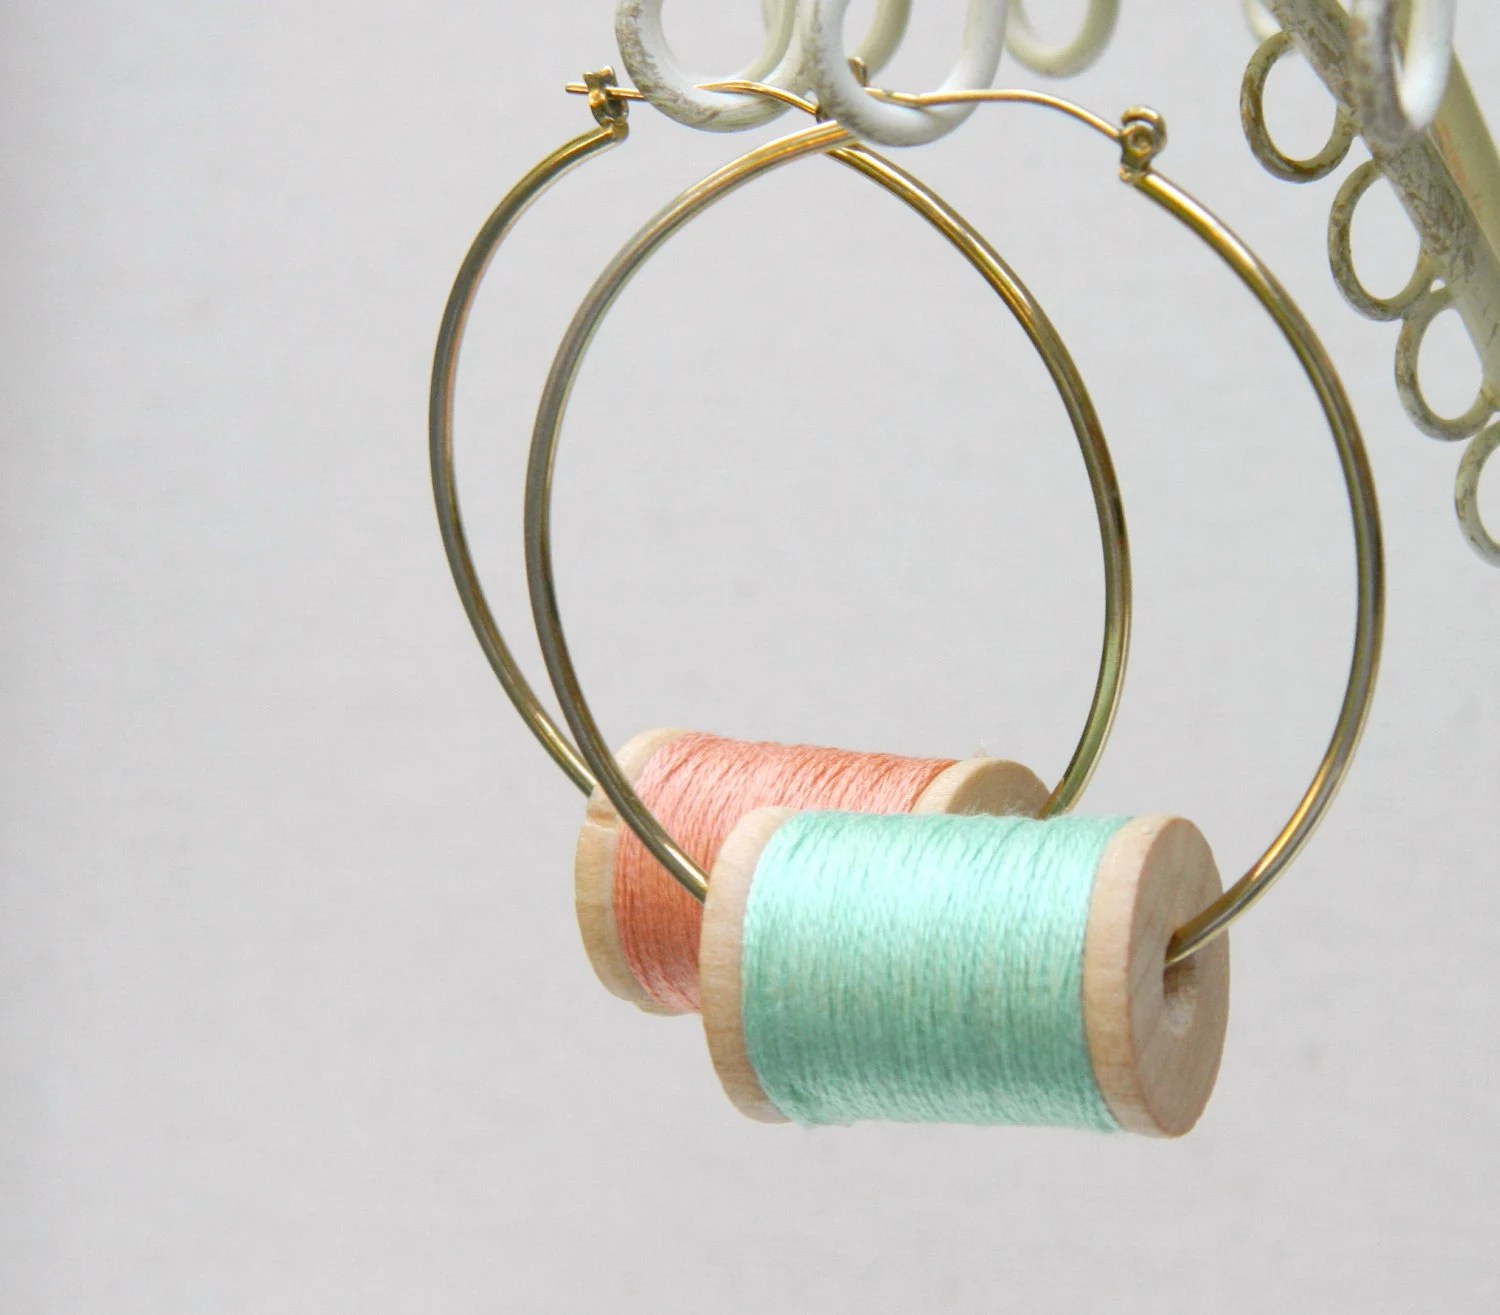 Green Mint Peach Pastel Large Hoops Wooden Spool Earrings with Thread - arthandmadejewelry